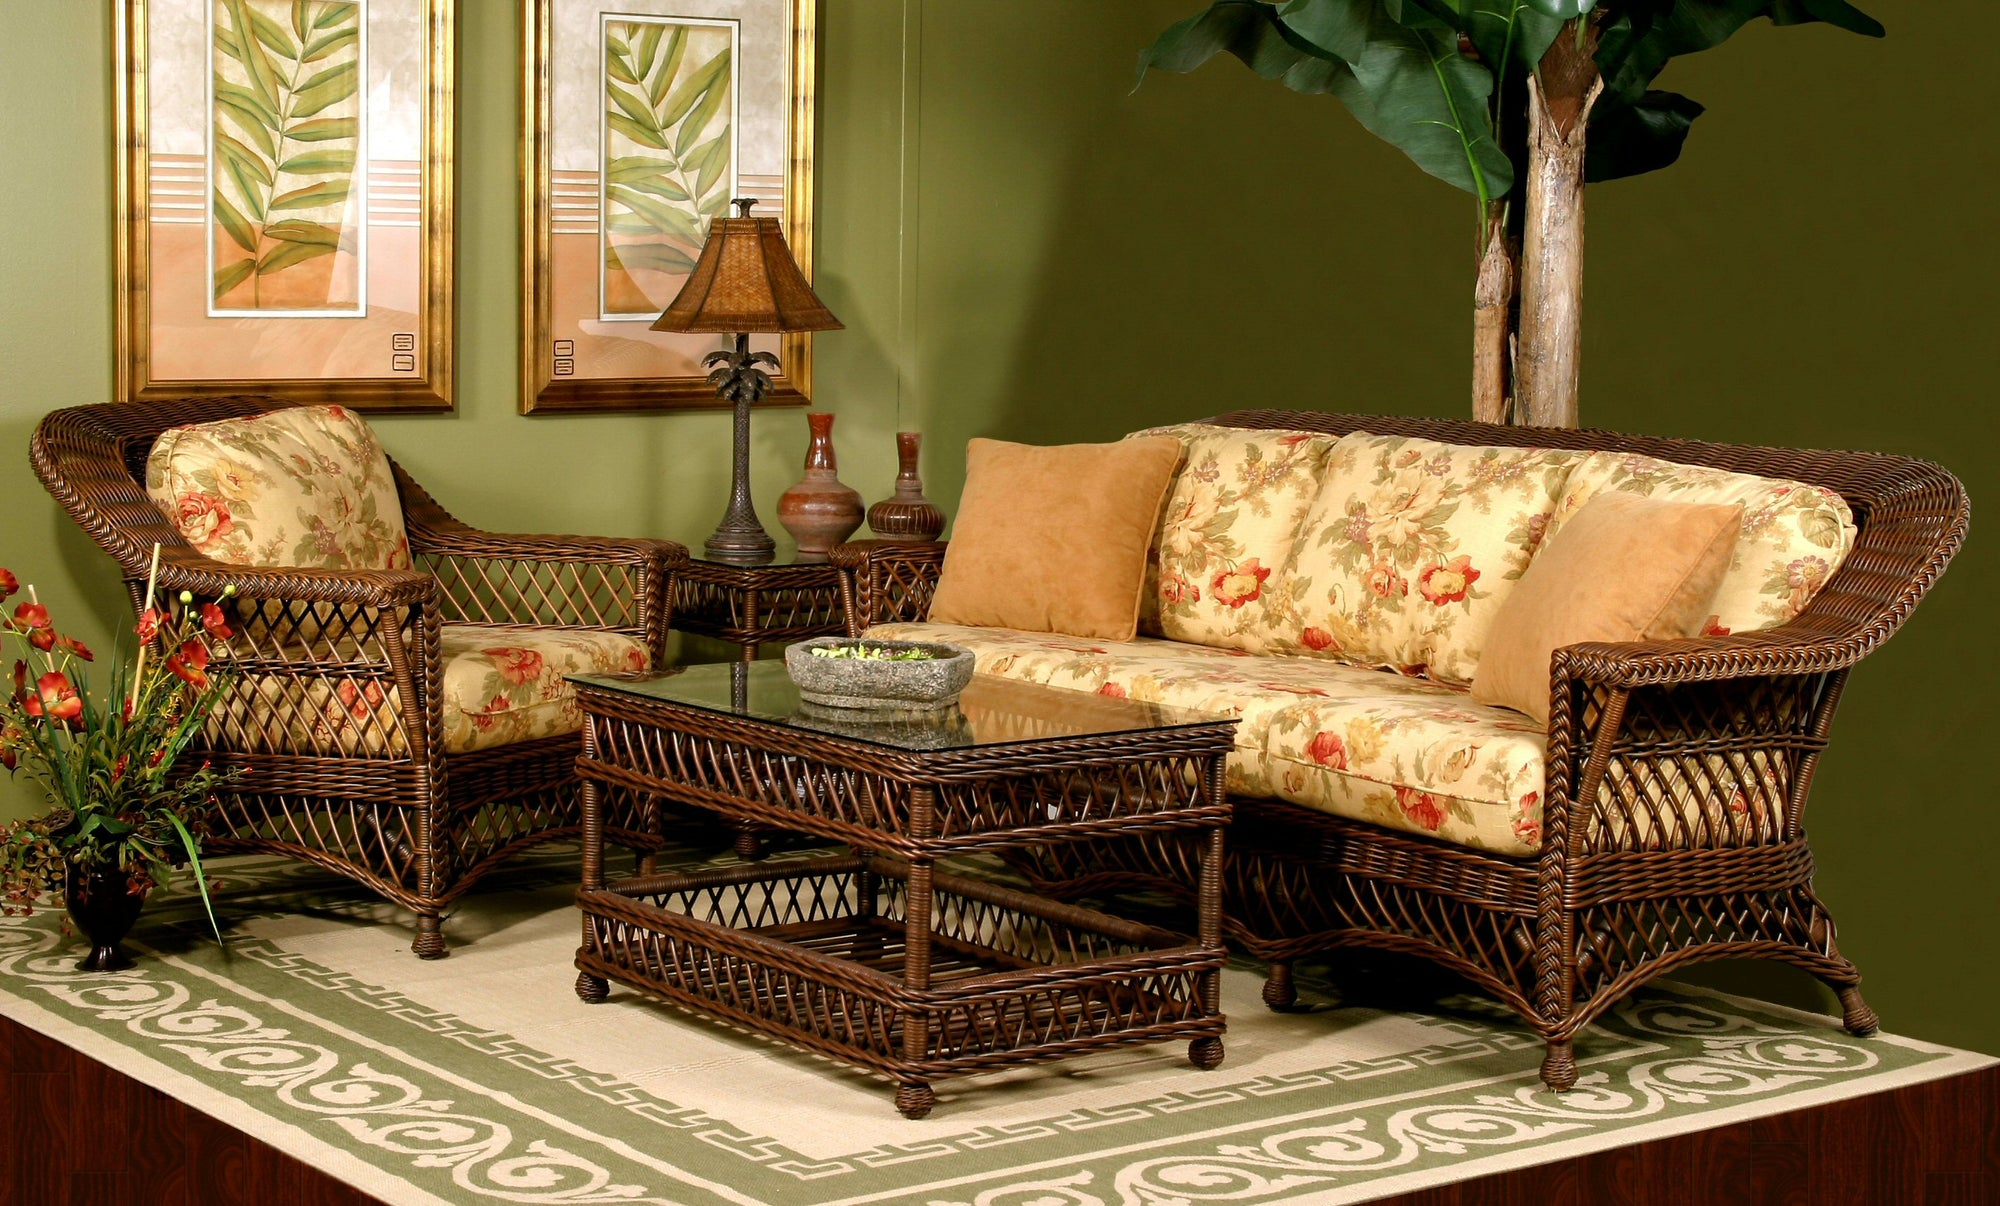 Spice Islands Spice Islands Bar Harbor Brownwash Wicker 6 Piece Living Sun Room Seating Set Outdoor Furniture Set - Rattan Imports